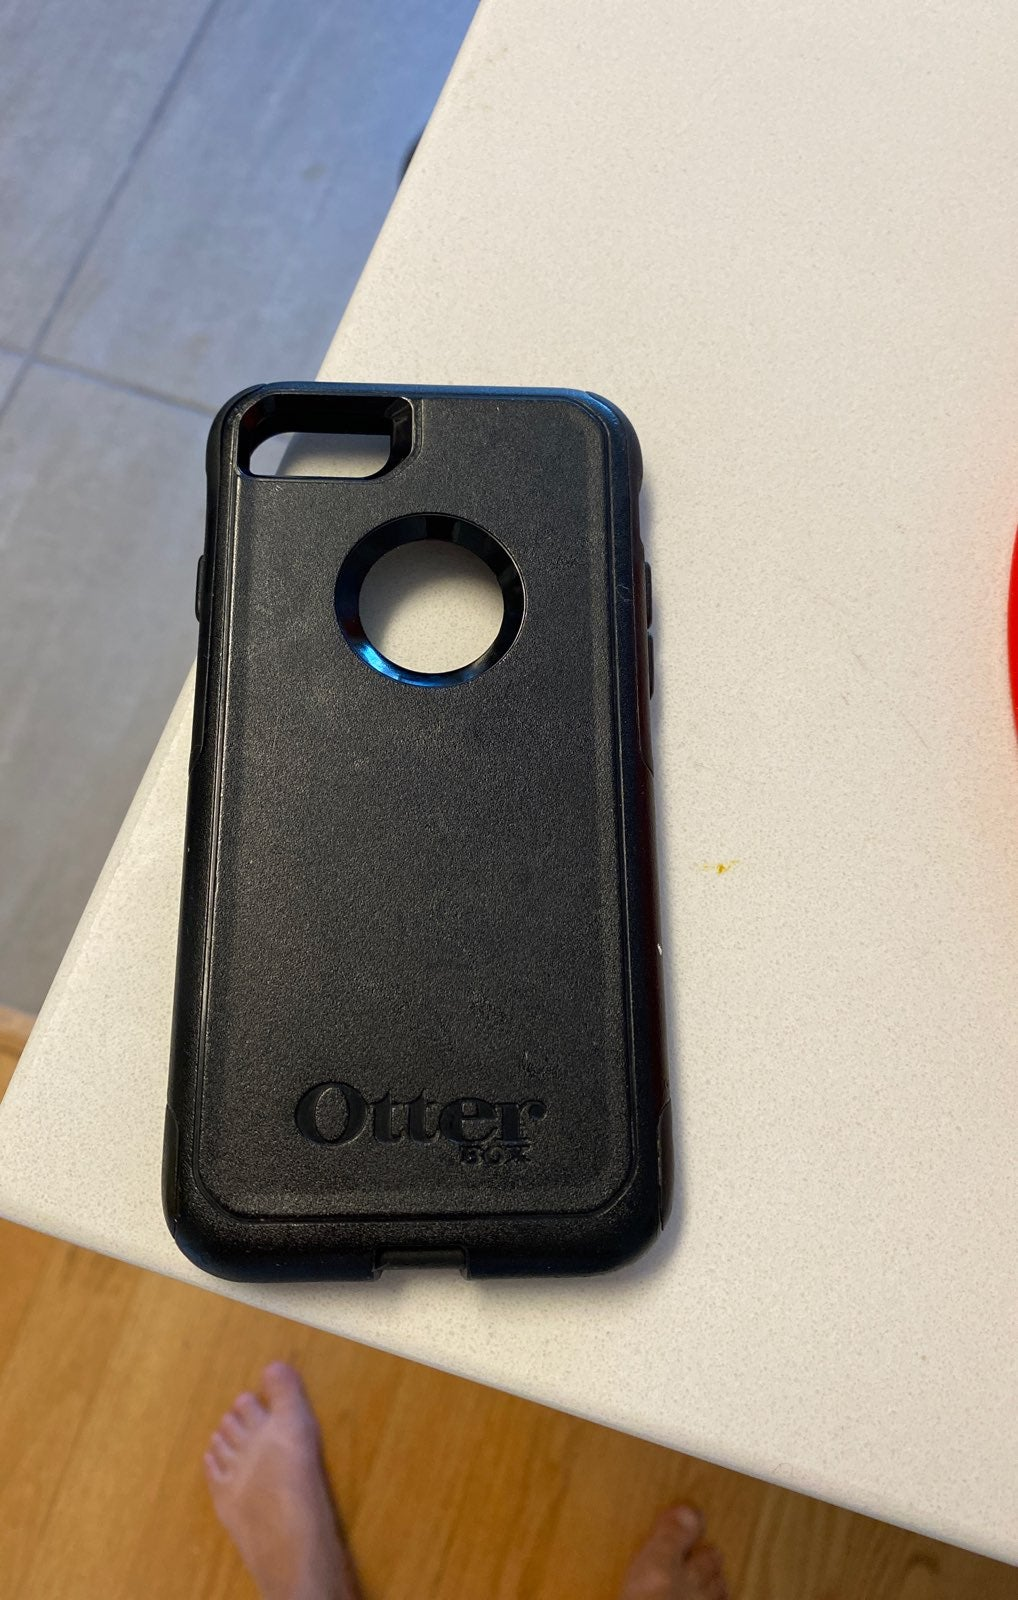 Otterbox iphone 7/8 and se (2nd gen)